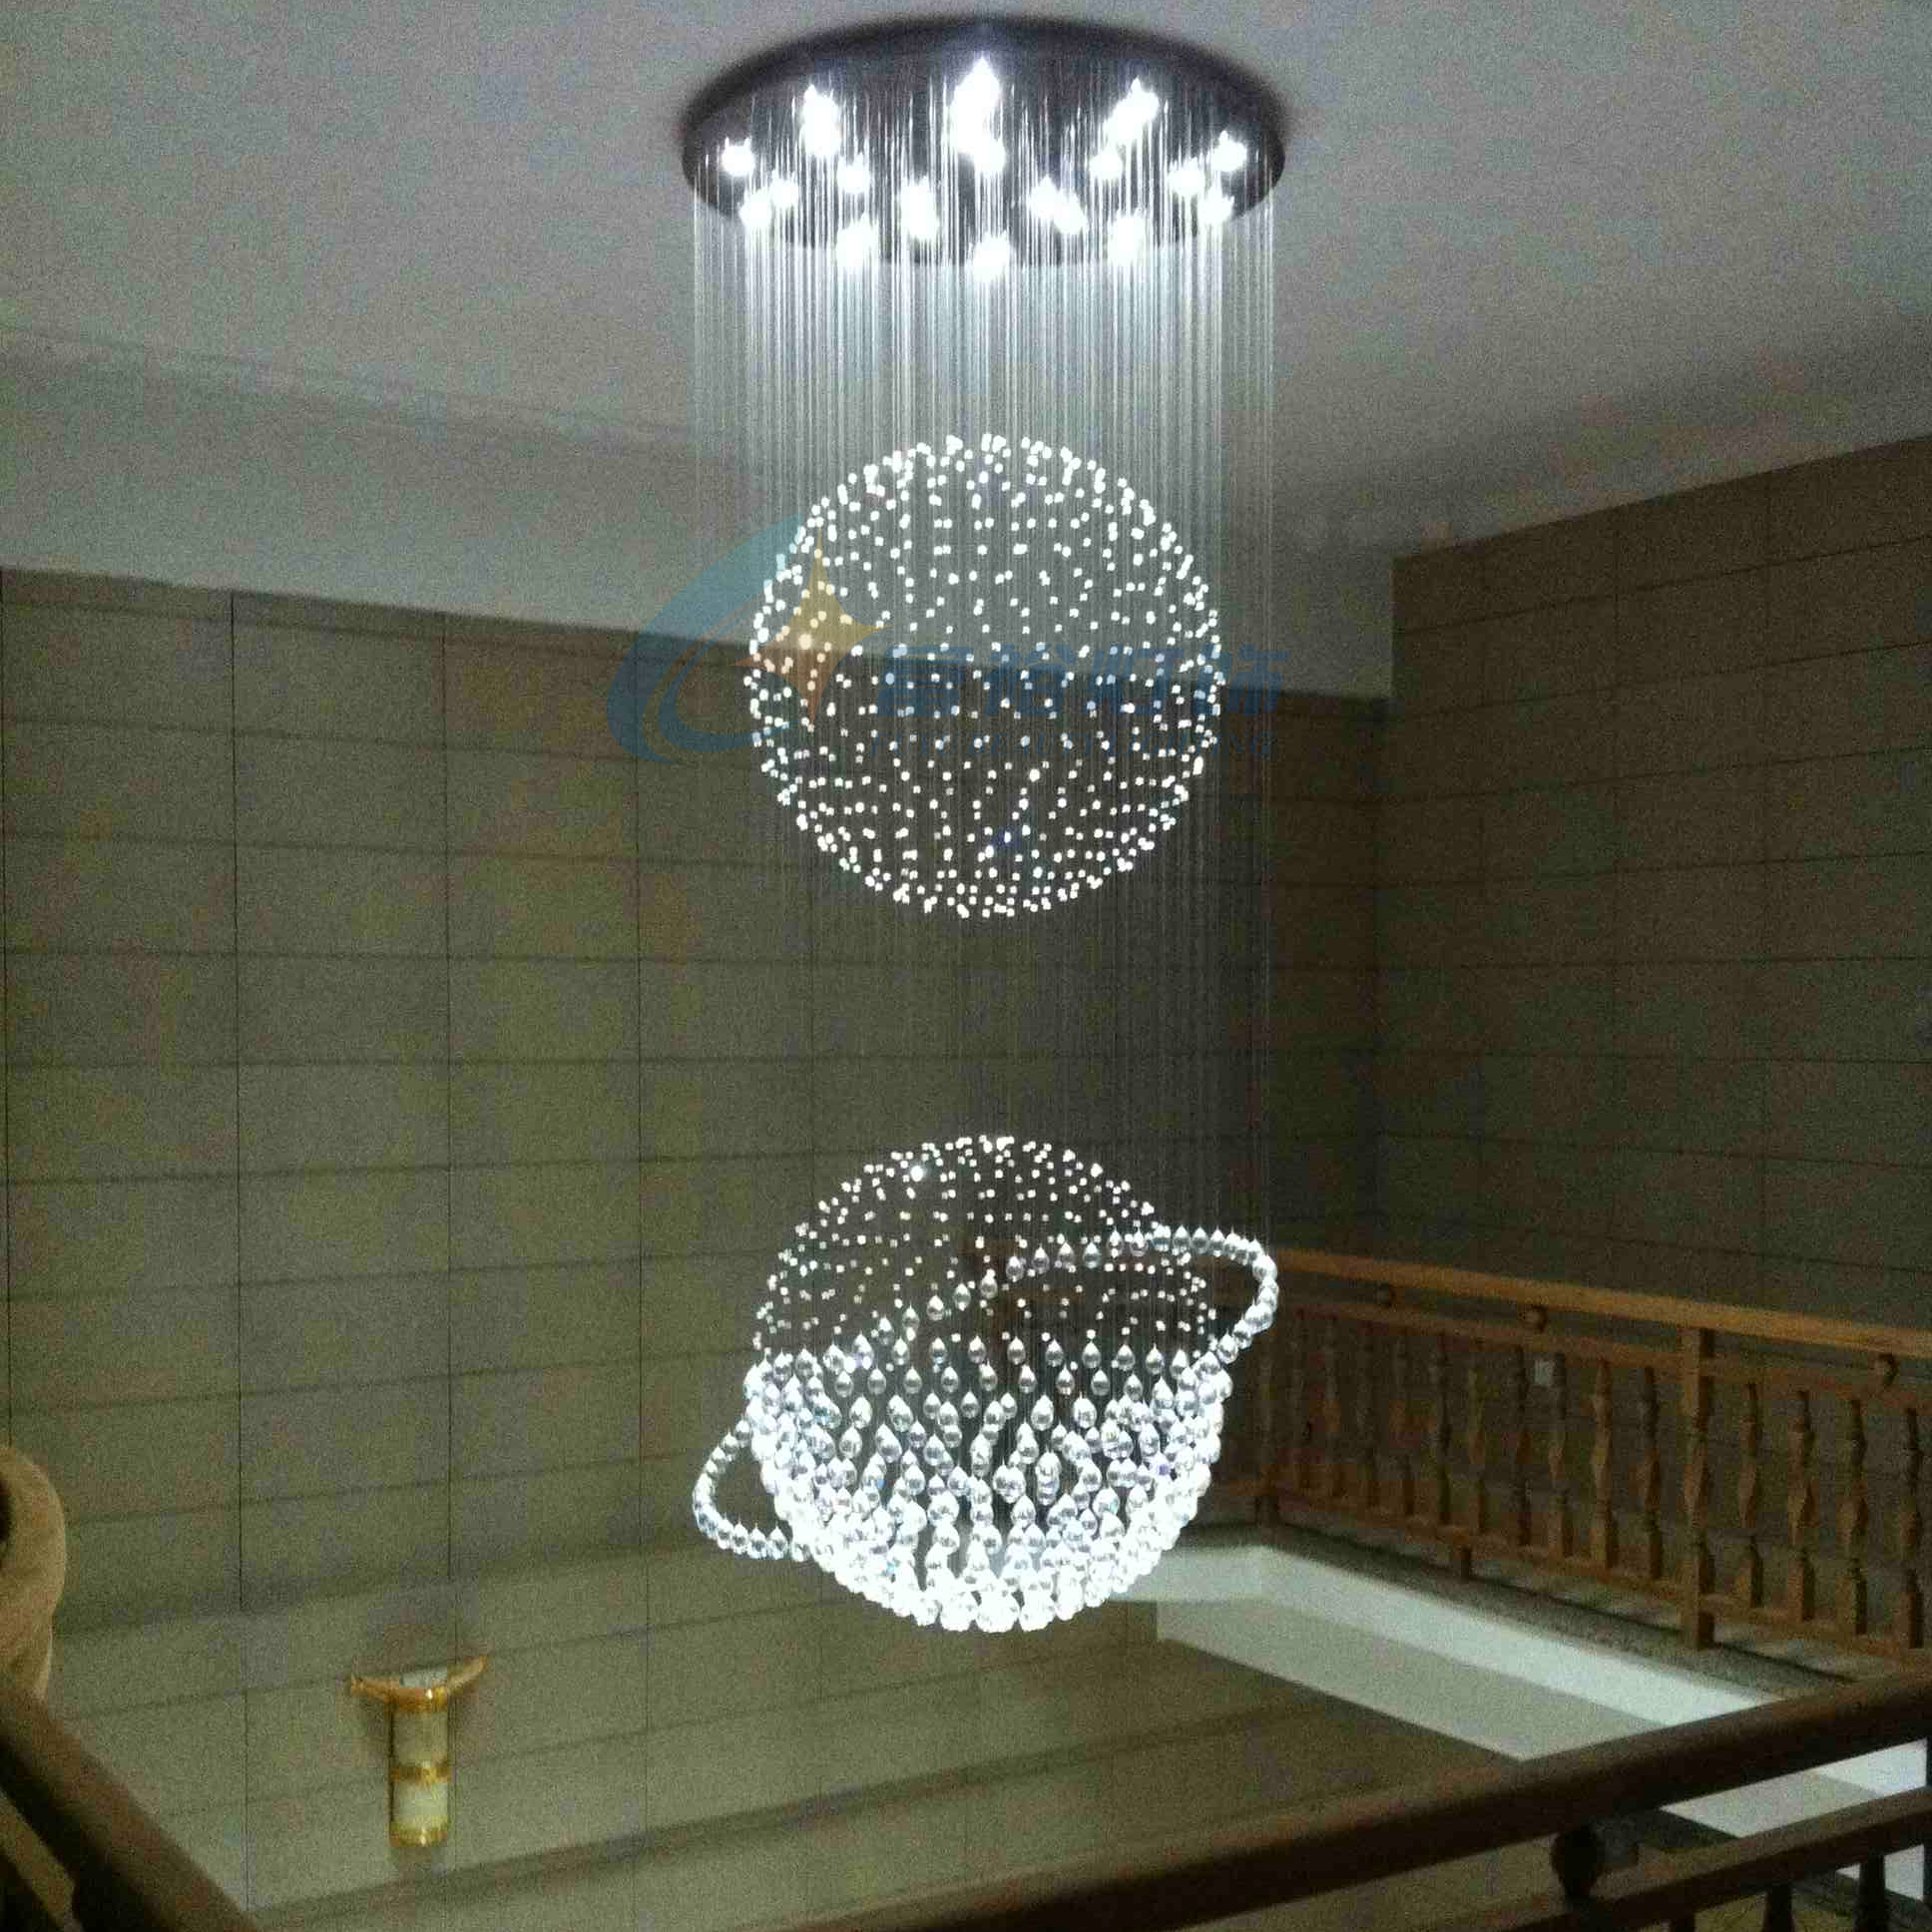 Crystal pendant light led restaurant lights modern brief lamps stair lamp large pendant light 8632 crystal pendant light fashion gold pendant light modern pendant lights bedroom lamp decoration lamps